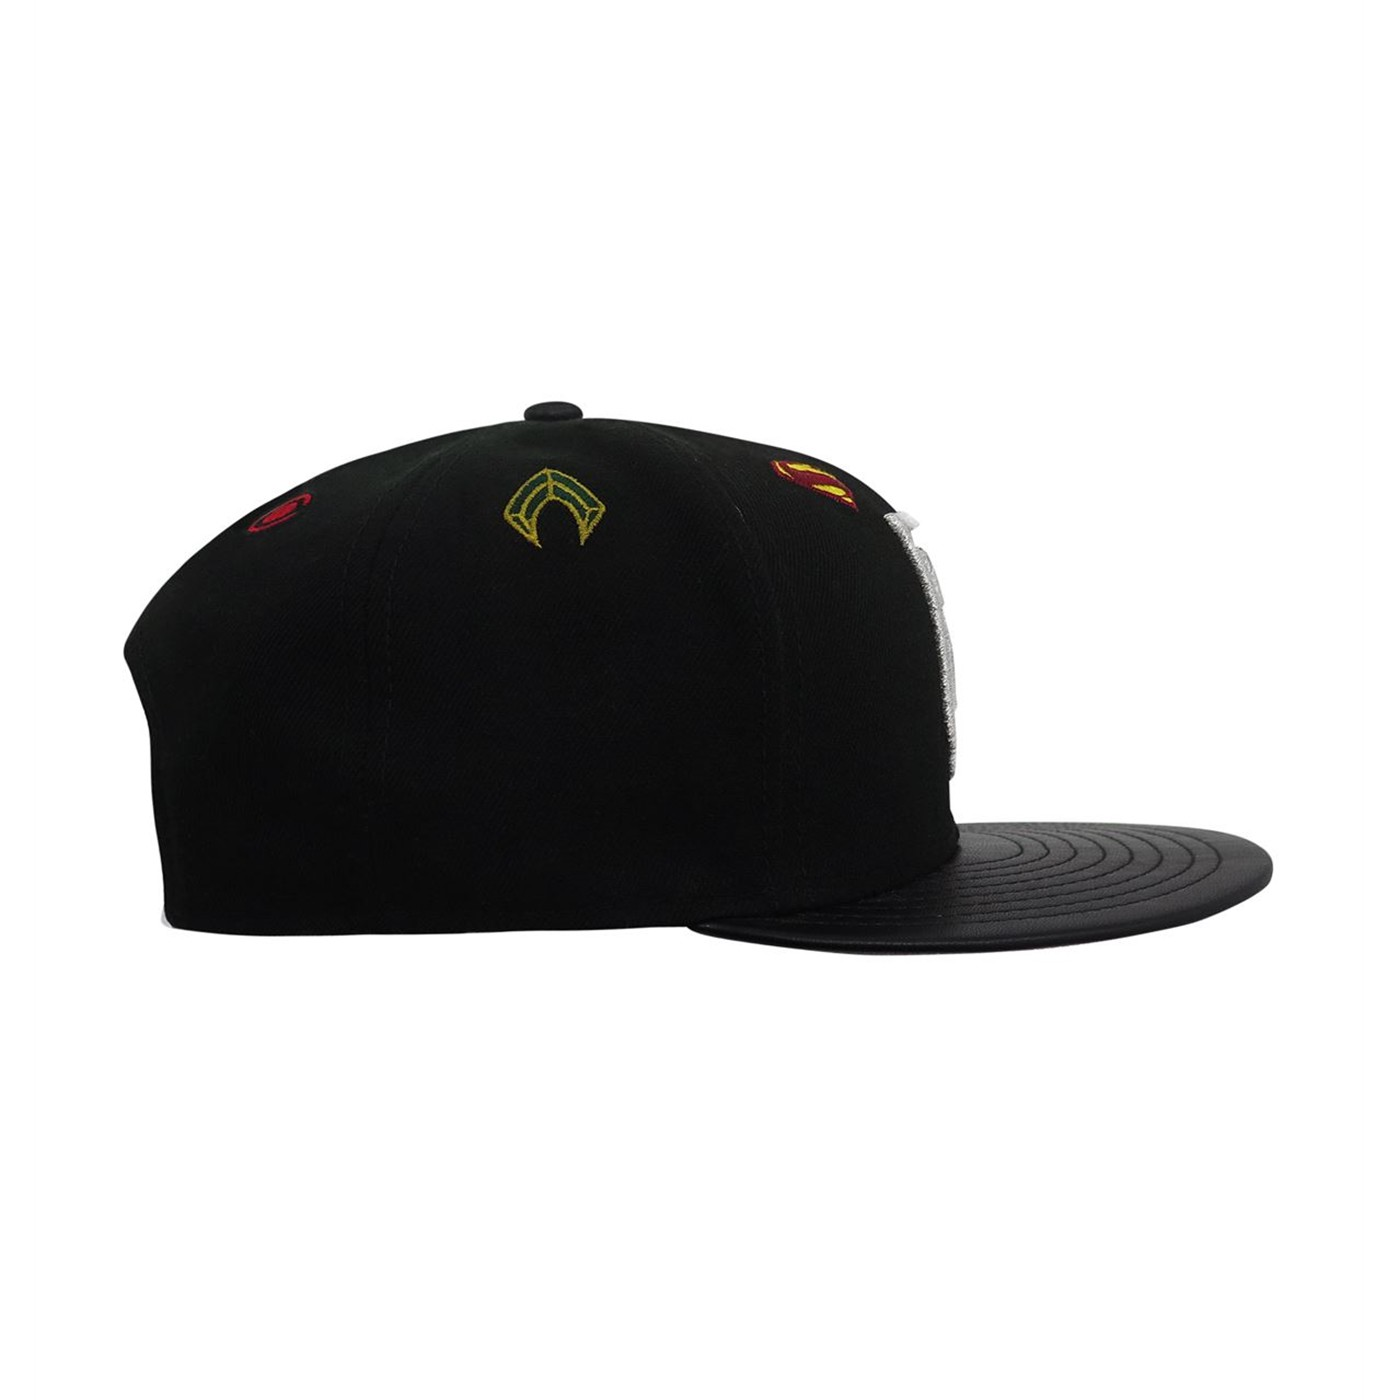 Justice League Badge & Symbols 9Fifty Adjustable Hat